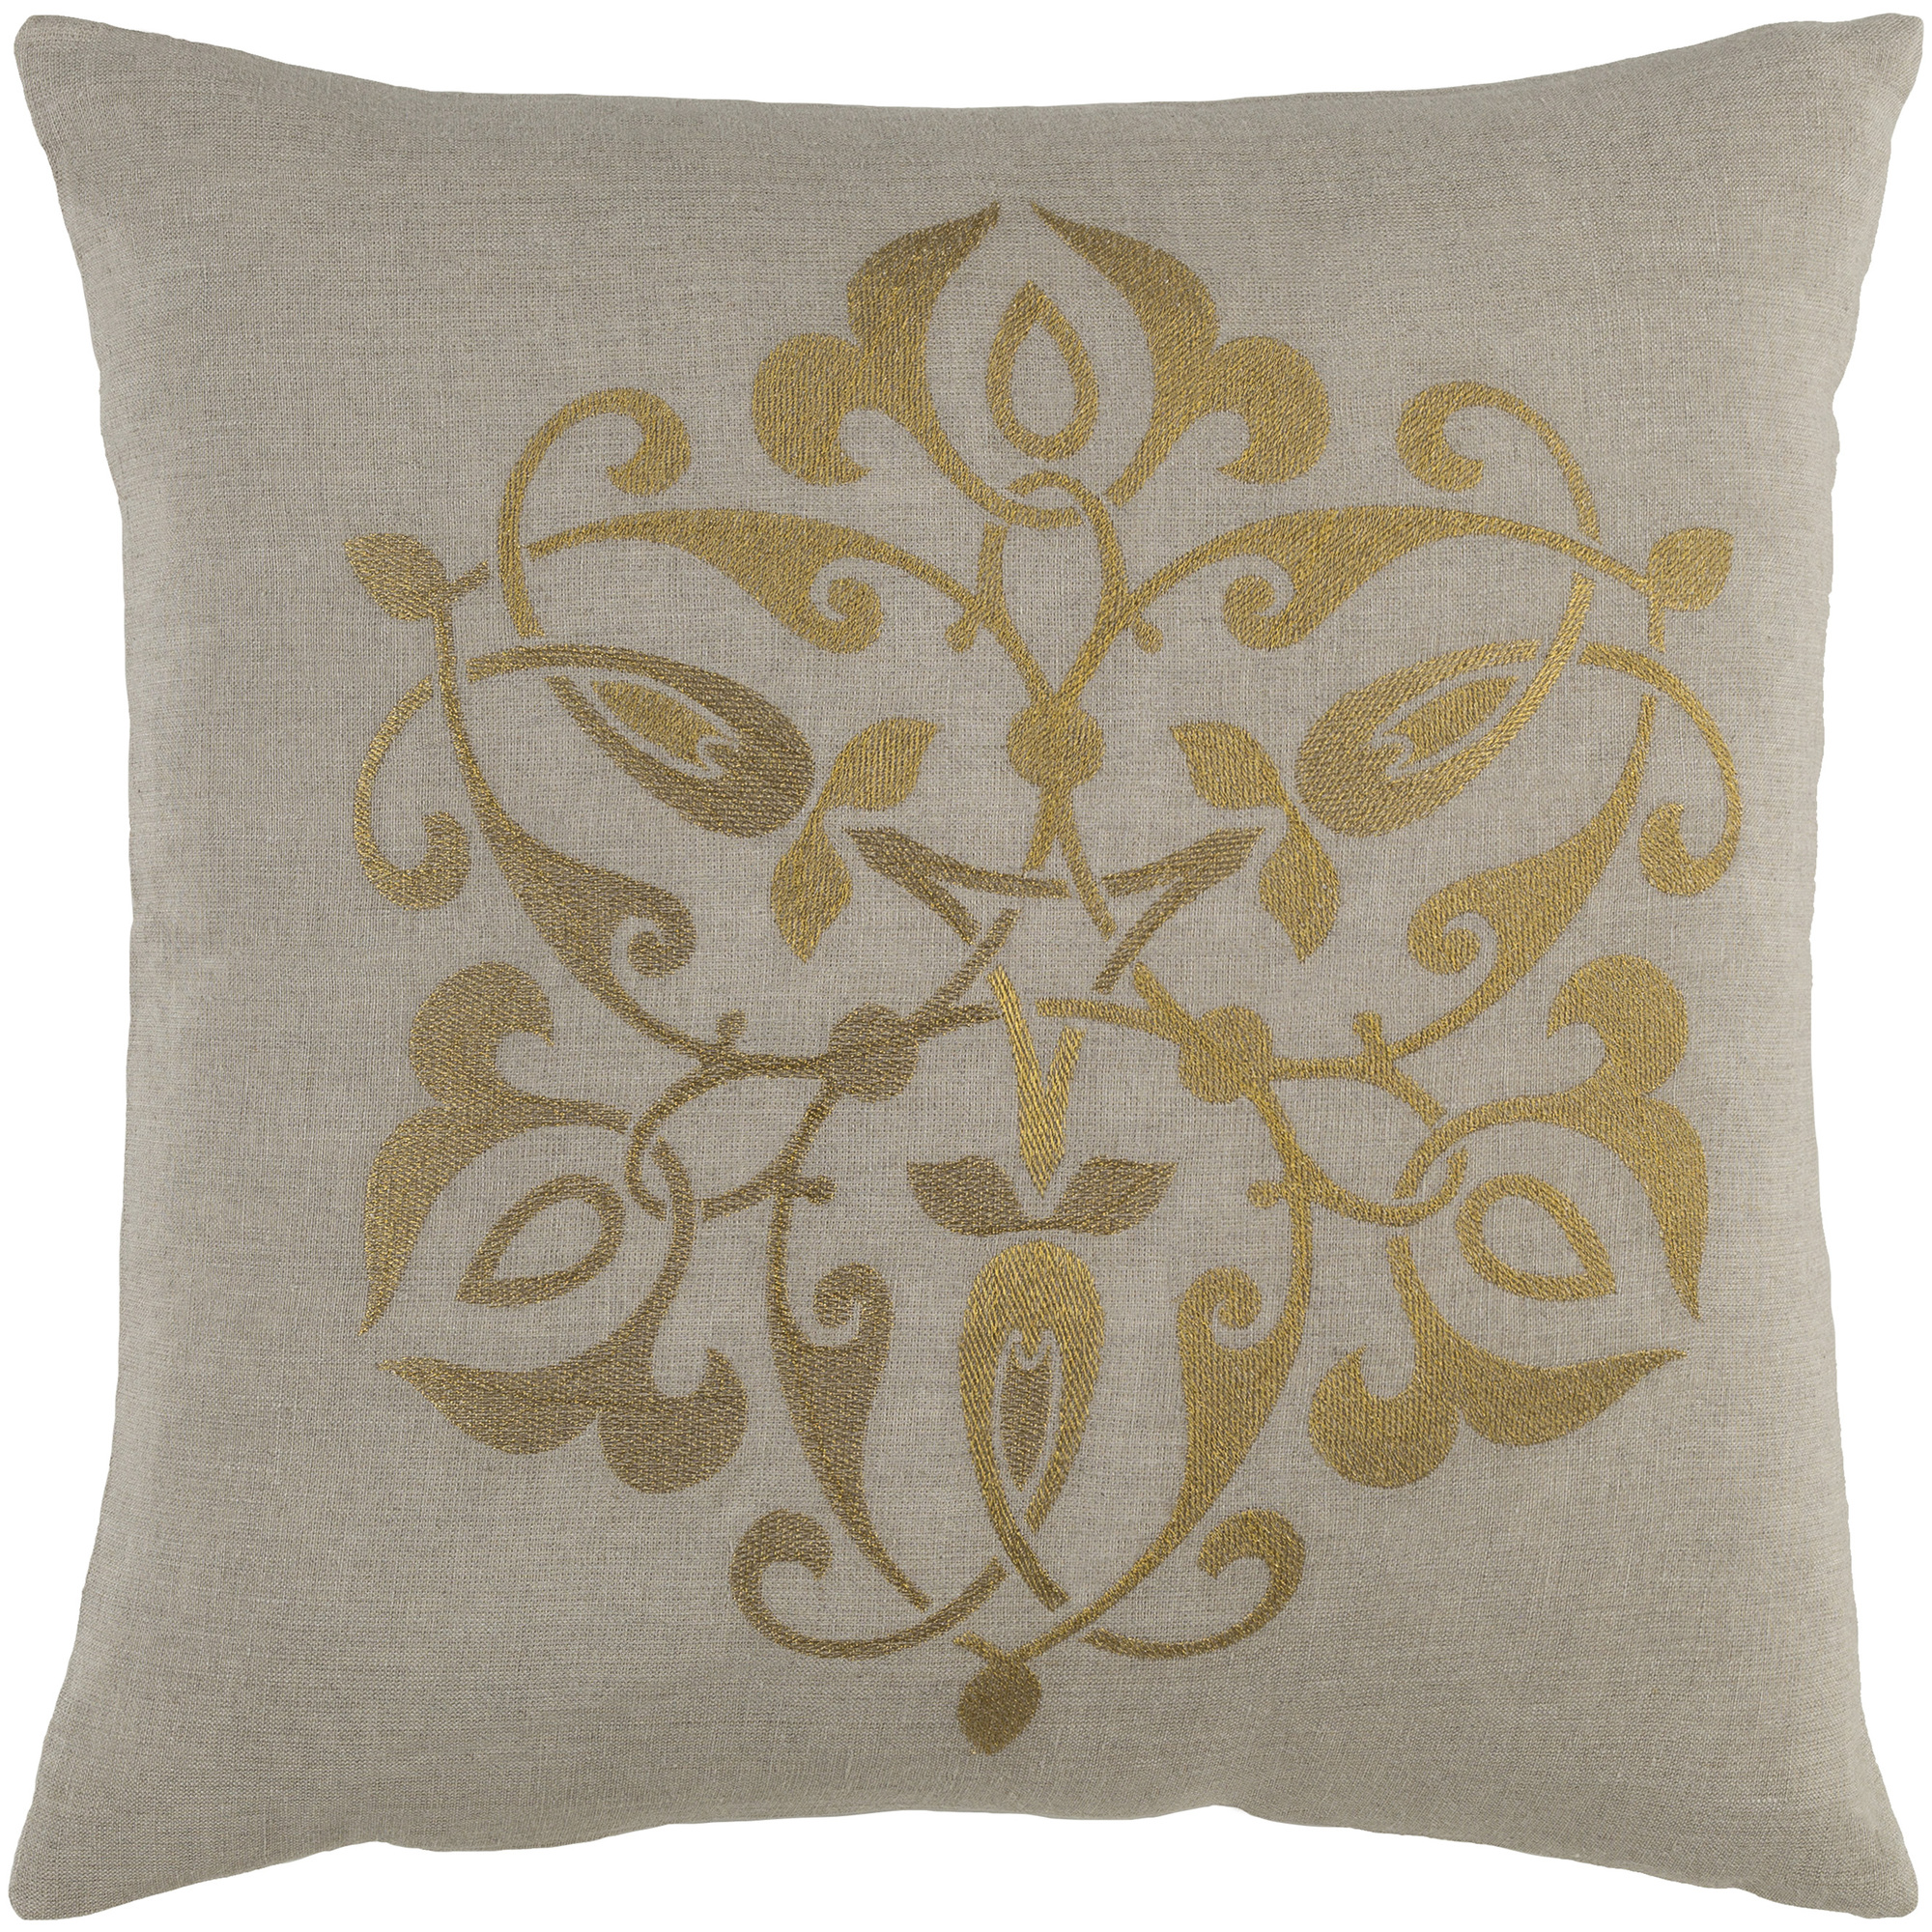 "Art of Knot Lanfranc 22"" x 22"" Pillow Cover"